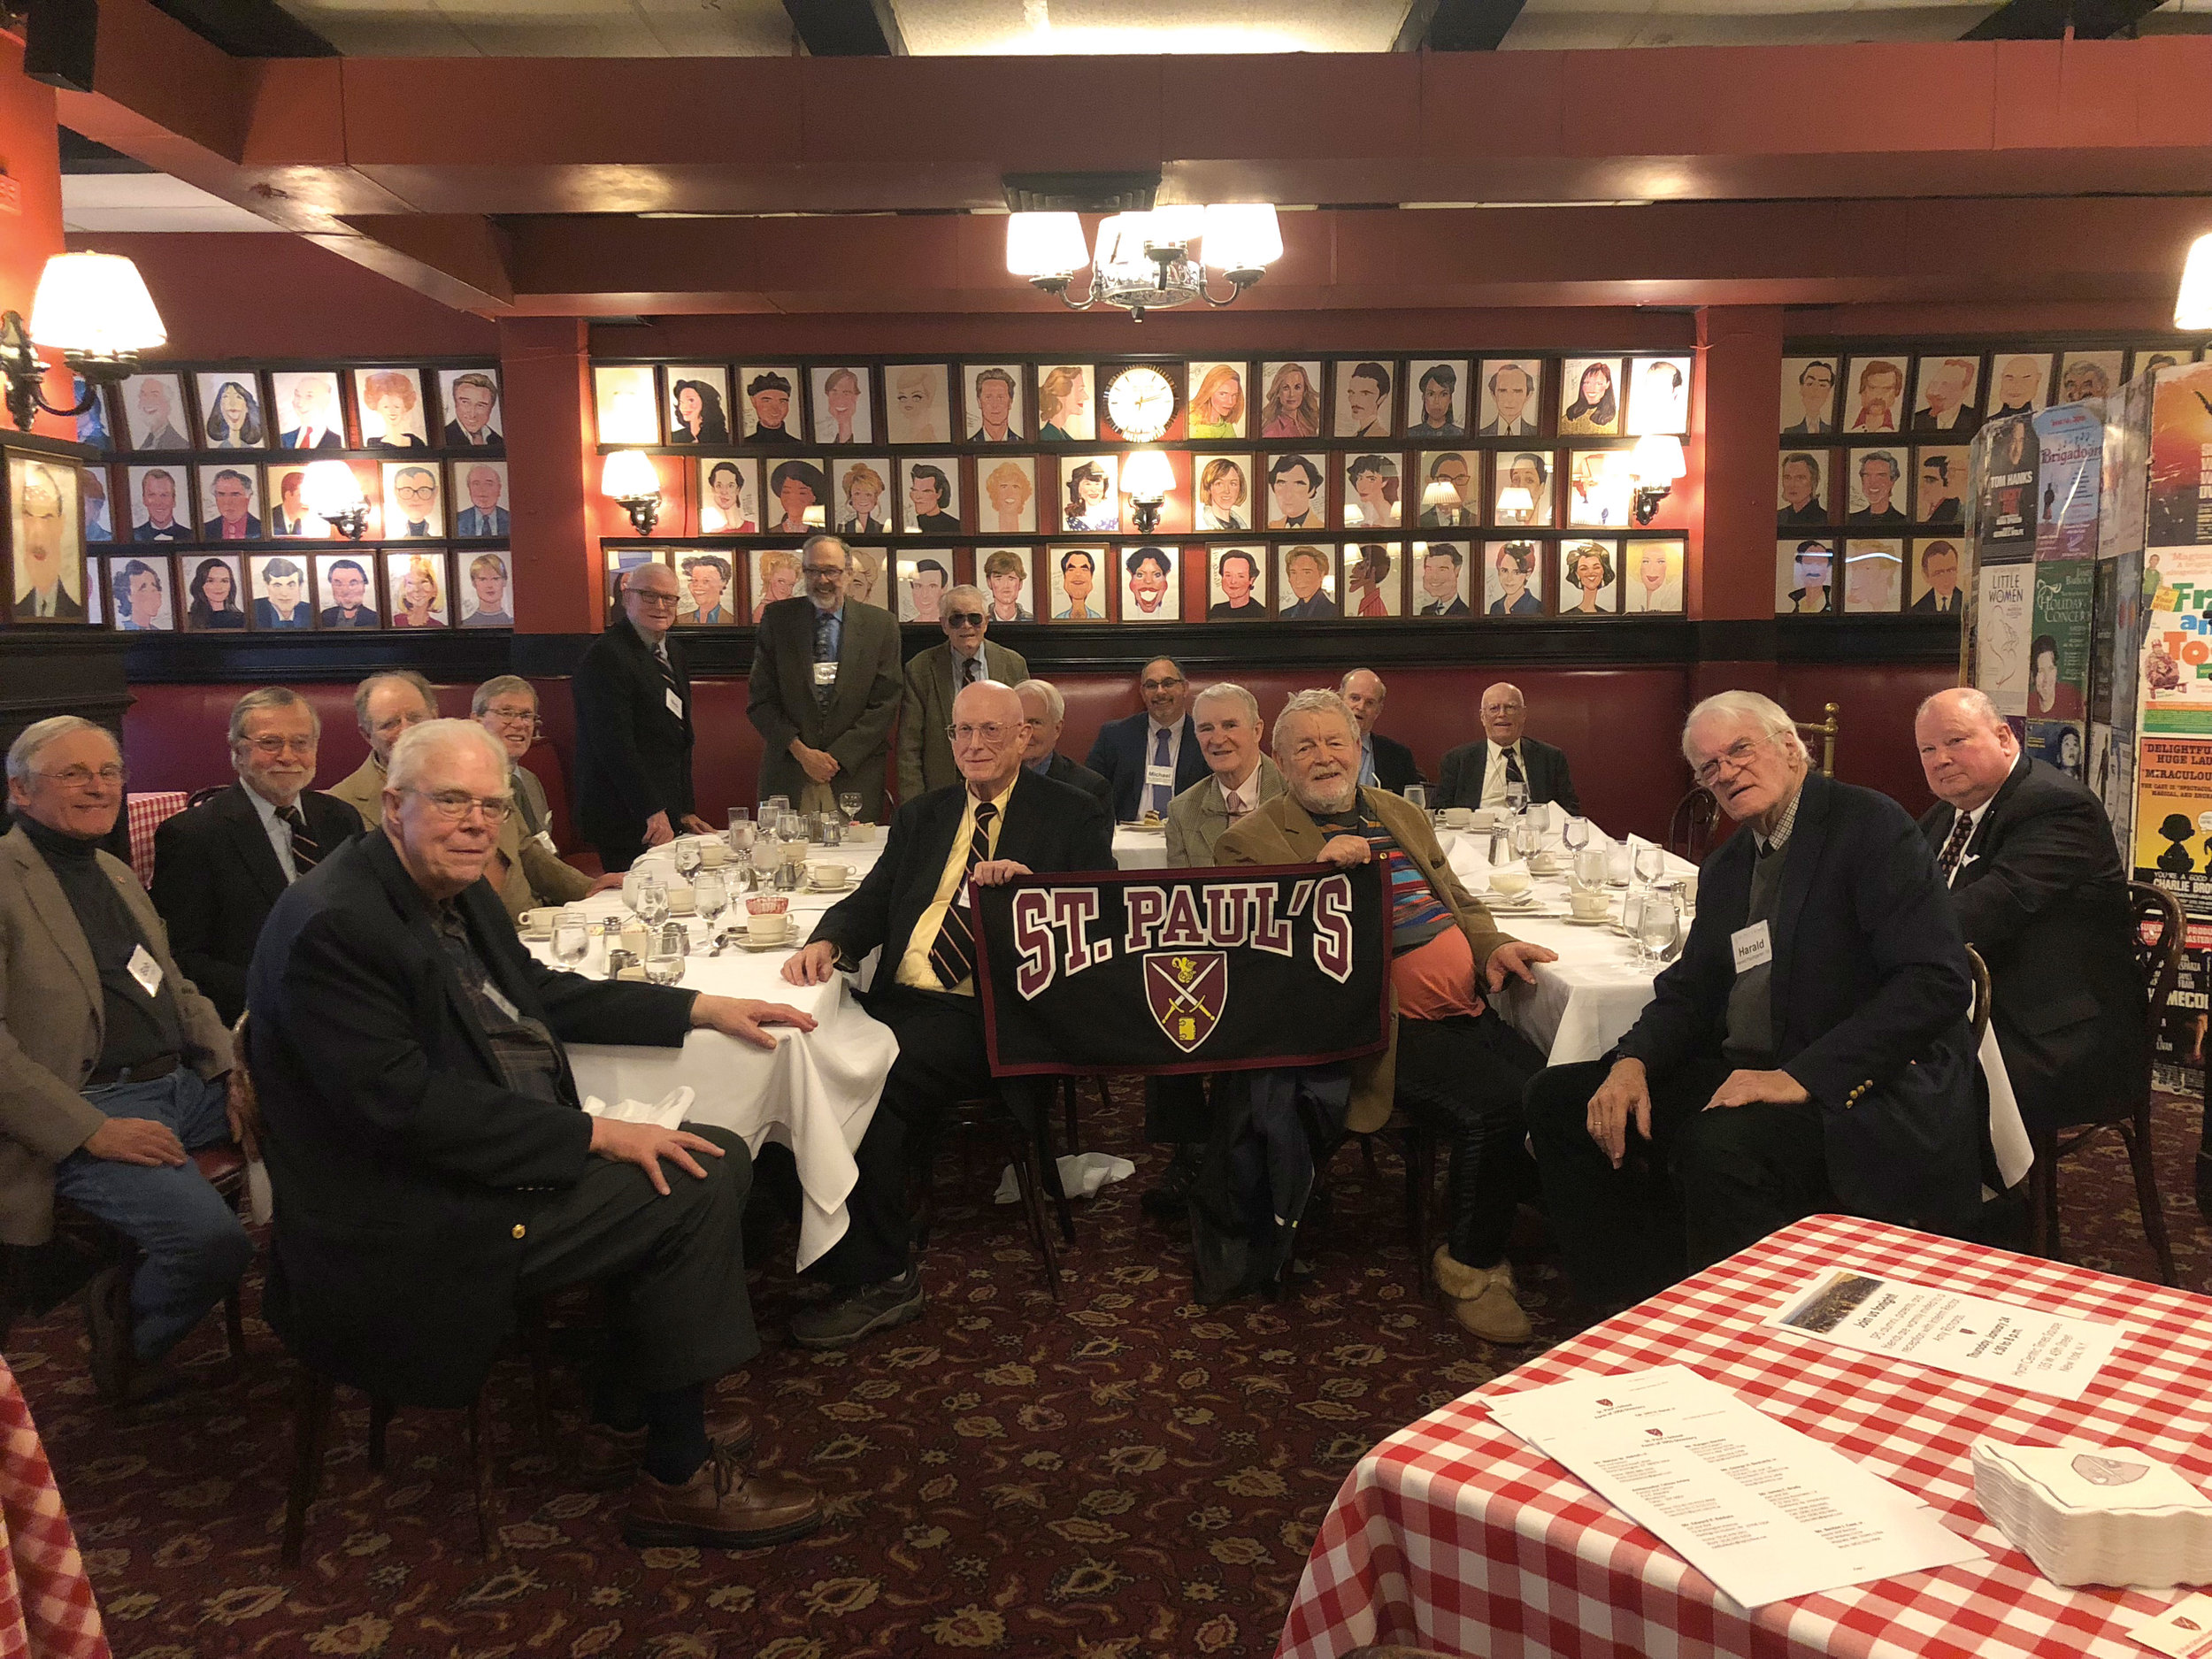 Lunch at Sardi's in New York: Nick Platt '53, Peter Swords '53, Ed Harding '54, Jim Righter '54, Reeve Schley '54, John Holbrook '55, John Horan '55, J. Paul Horne '55, Nat Howe '55, Jake Roak '55, Dyer Wadsworth '55, Bob Webber '55, Rennie Atterbury '56, Larry Bogart '56, Mike Hershey '56, Harald Paumgarten '56, and John Schley '56.